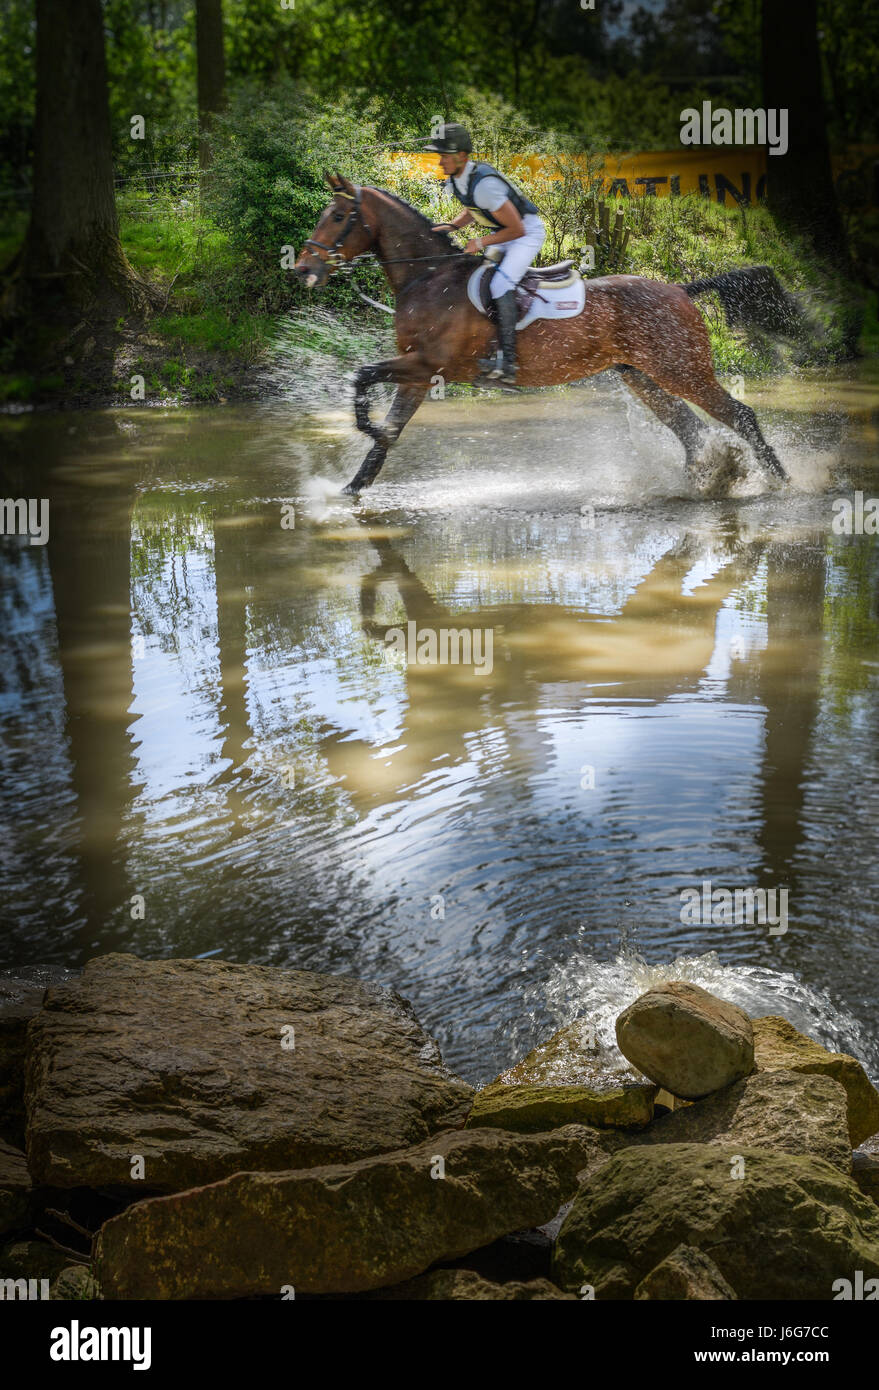 Rockingham Castle, Corby, UK. 21st May, 2017. Jack Pinkney and his horse LB Liberator splash pass through the water - Stock Image